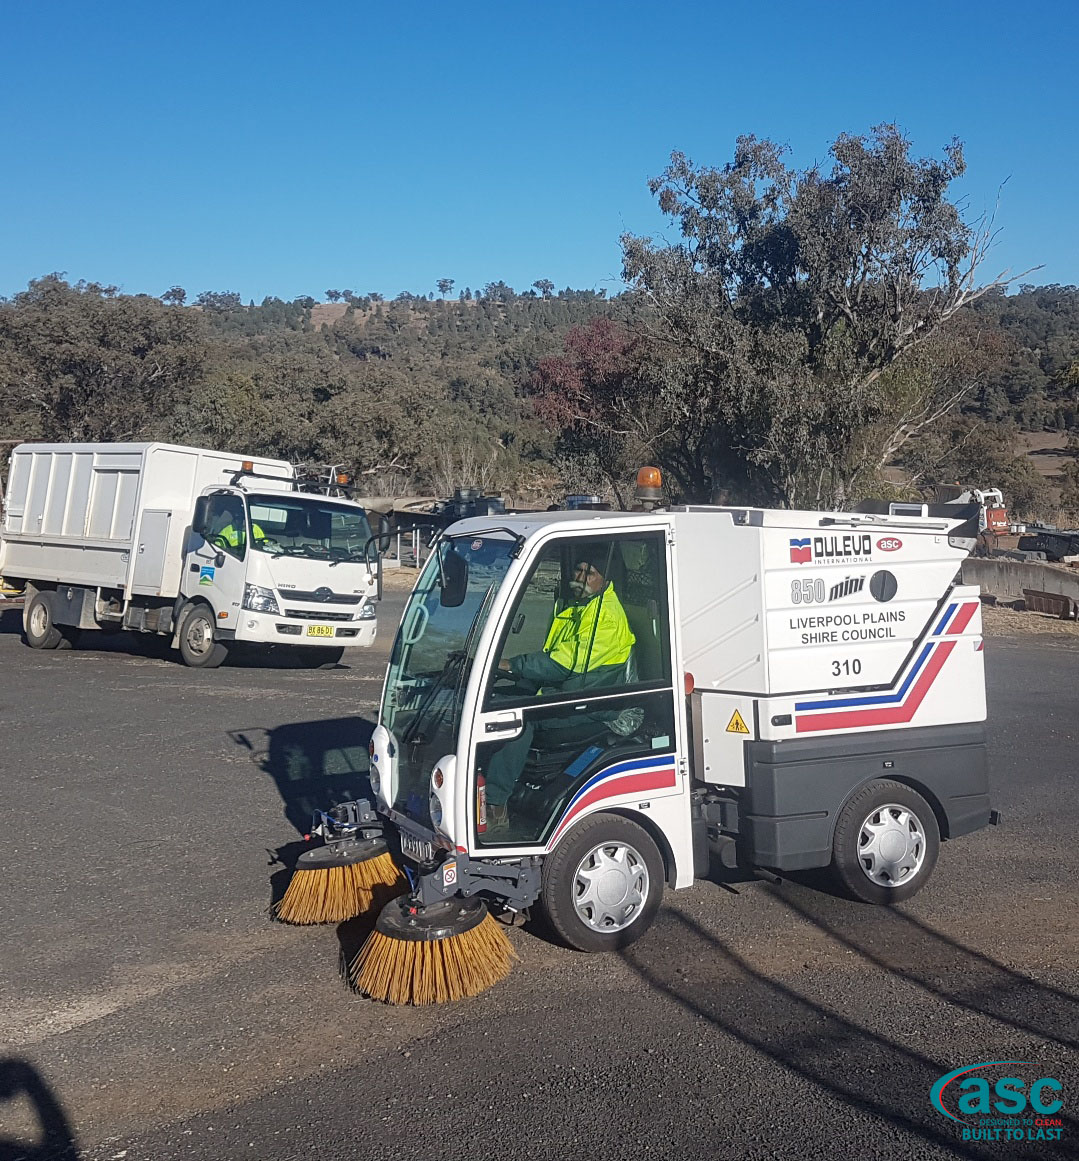 ASC Dulevo 850 Street Sweeper In Liverpool Plains Shire